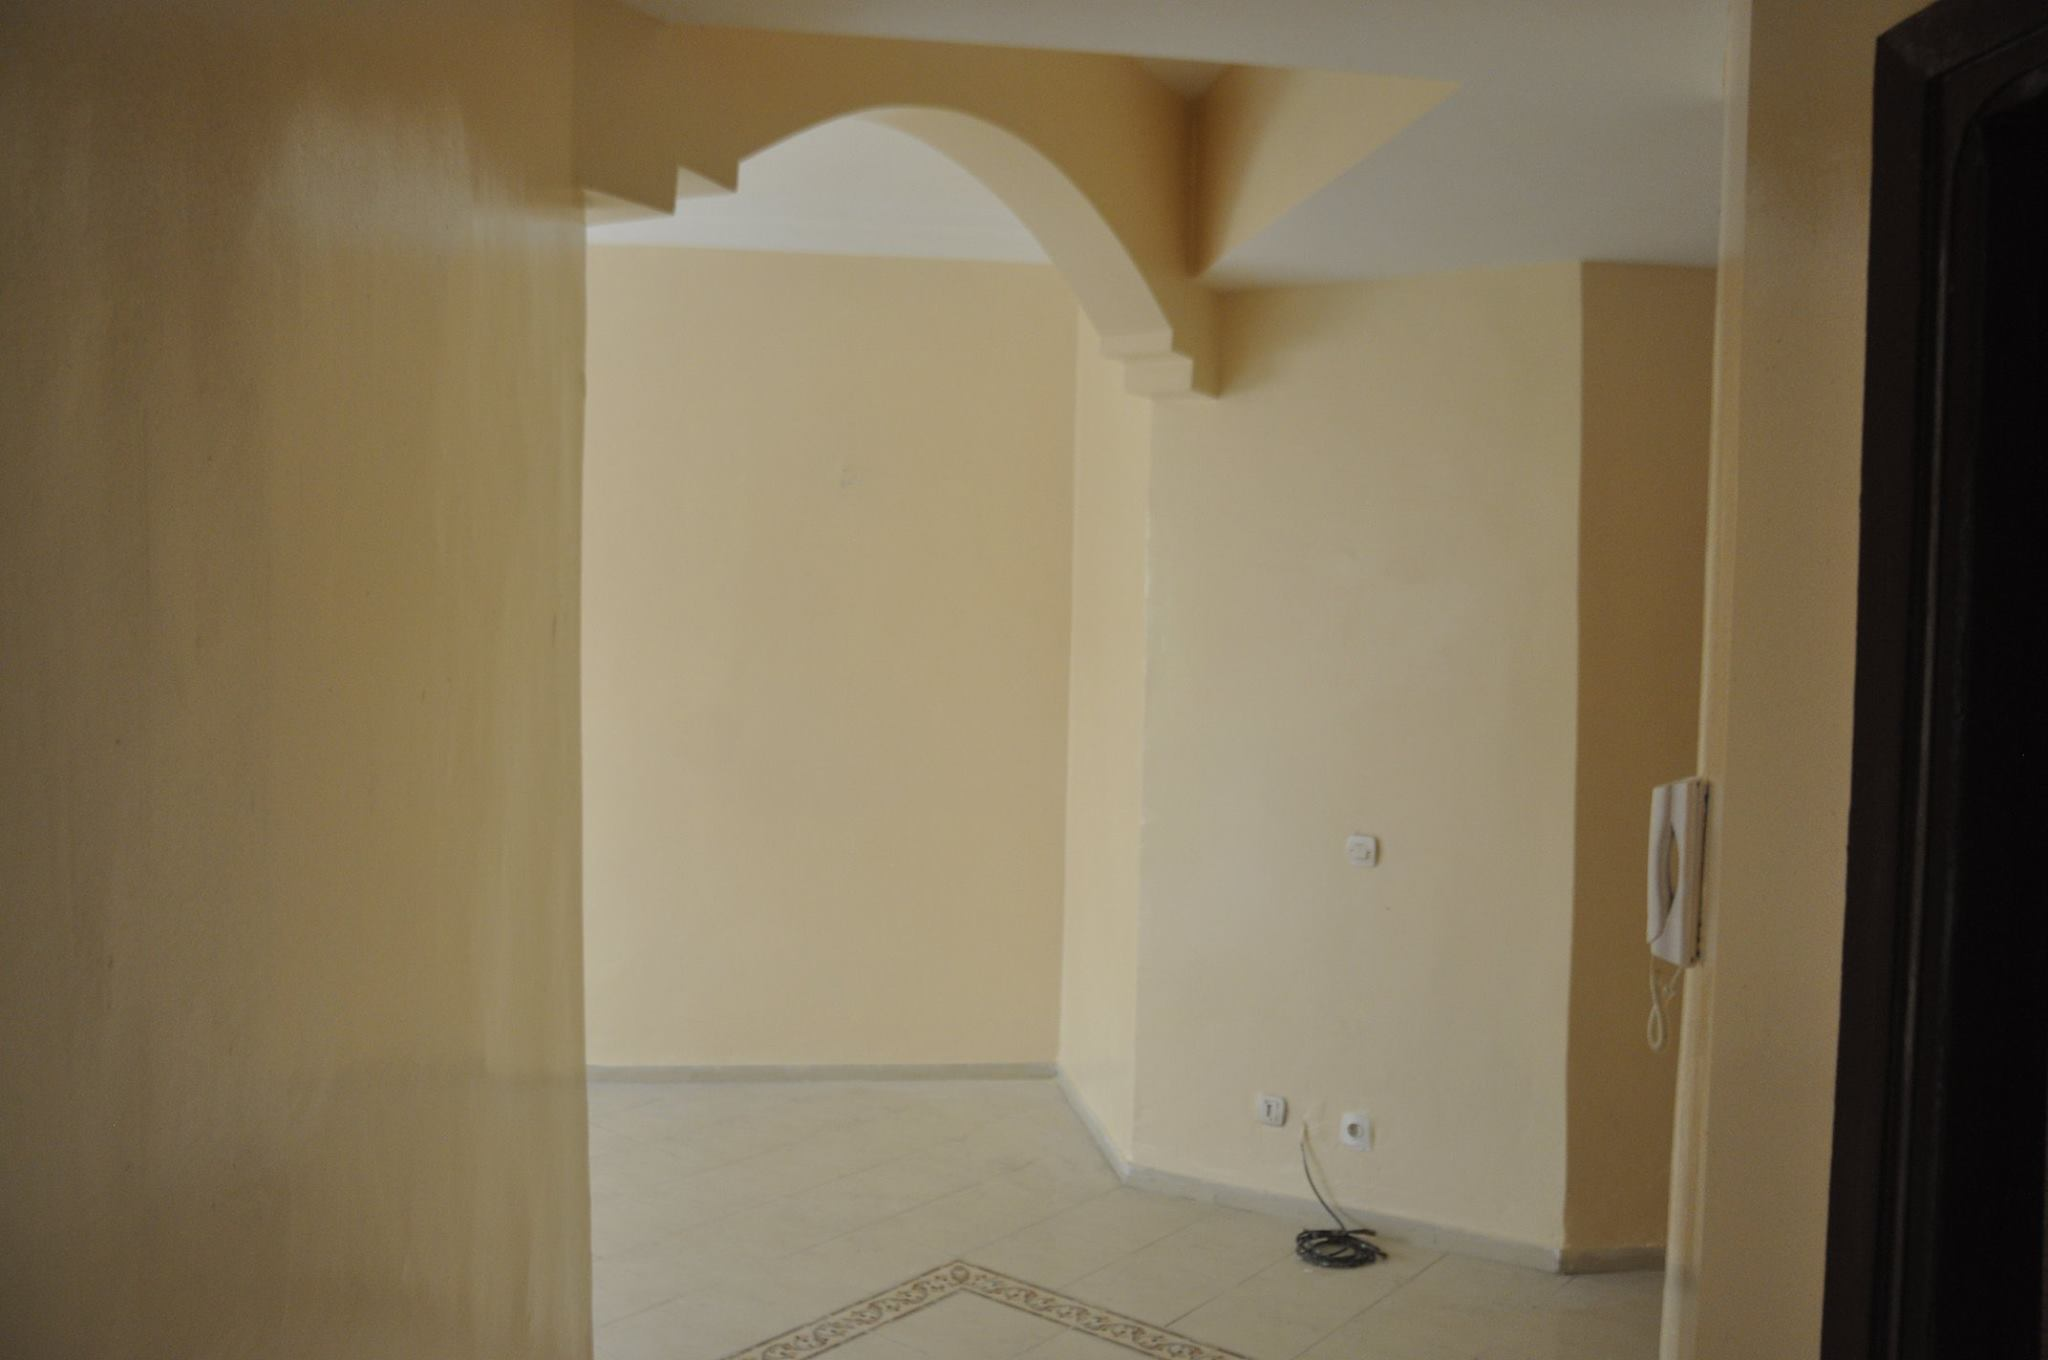 Appartement a louer|location|Grand Casablanca